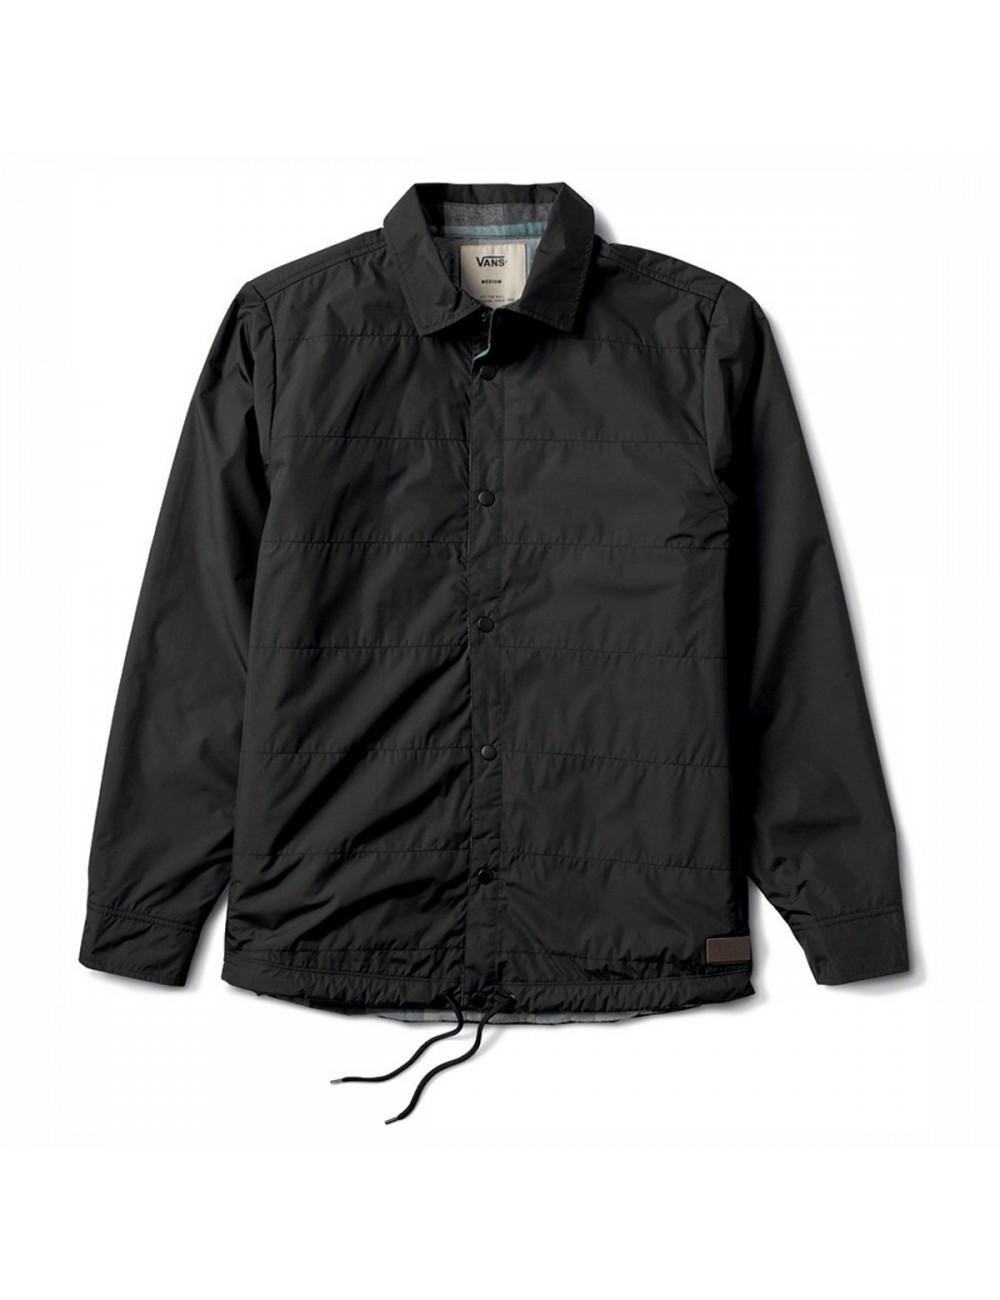 Vans Jonesport MTE Jacket - Black_11469